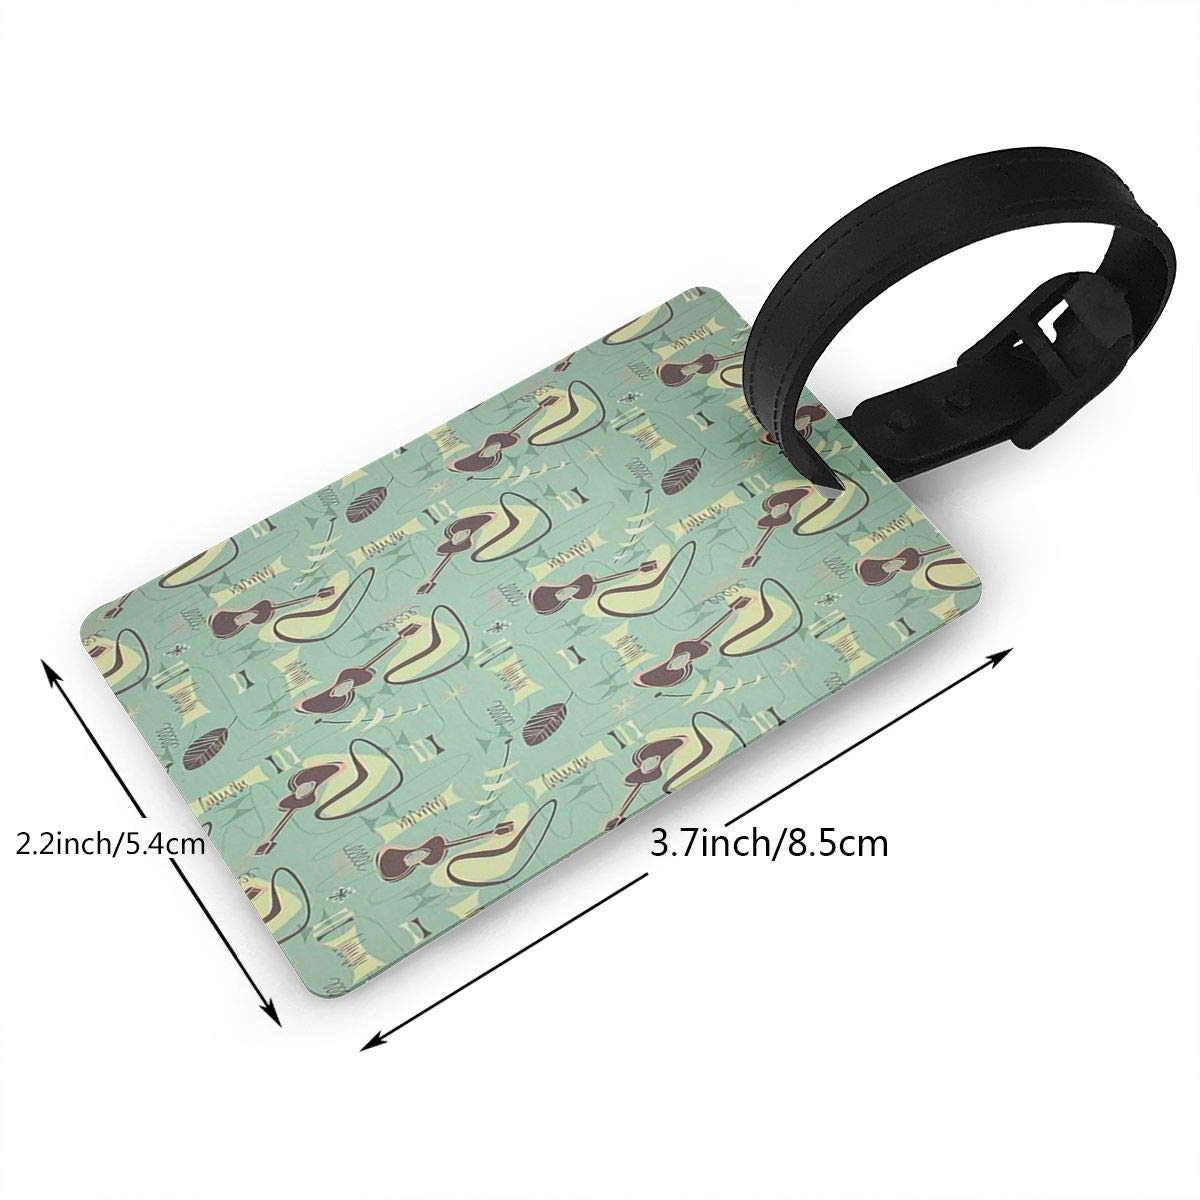 2 Pack Luggage Tags Ukulele Pattern Travel Tags For Travel Bag Suitcase Accessories